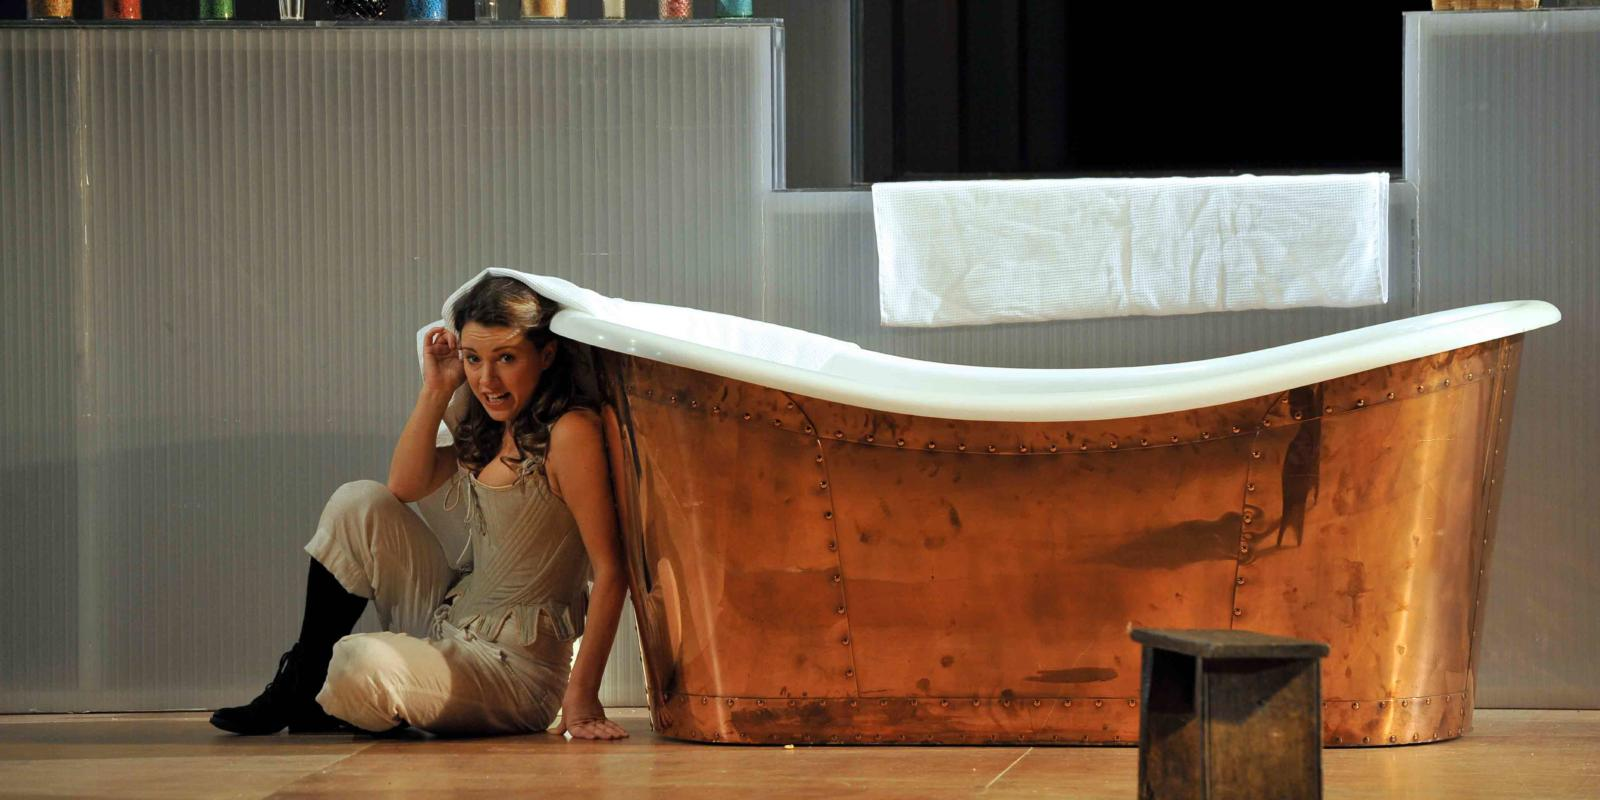 An image of Mary Bevan in Fiona Shaw's 2014 production of The Marriage of Figaro